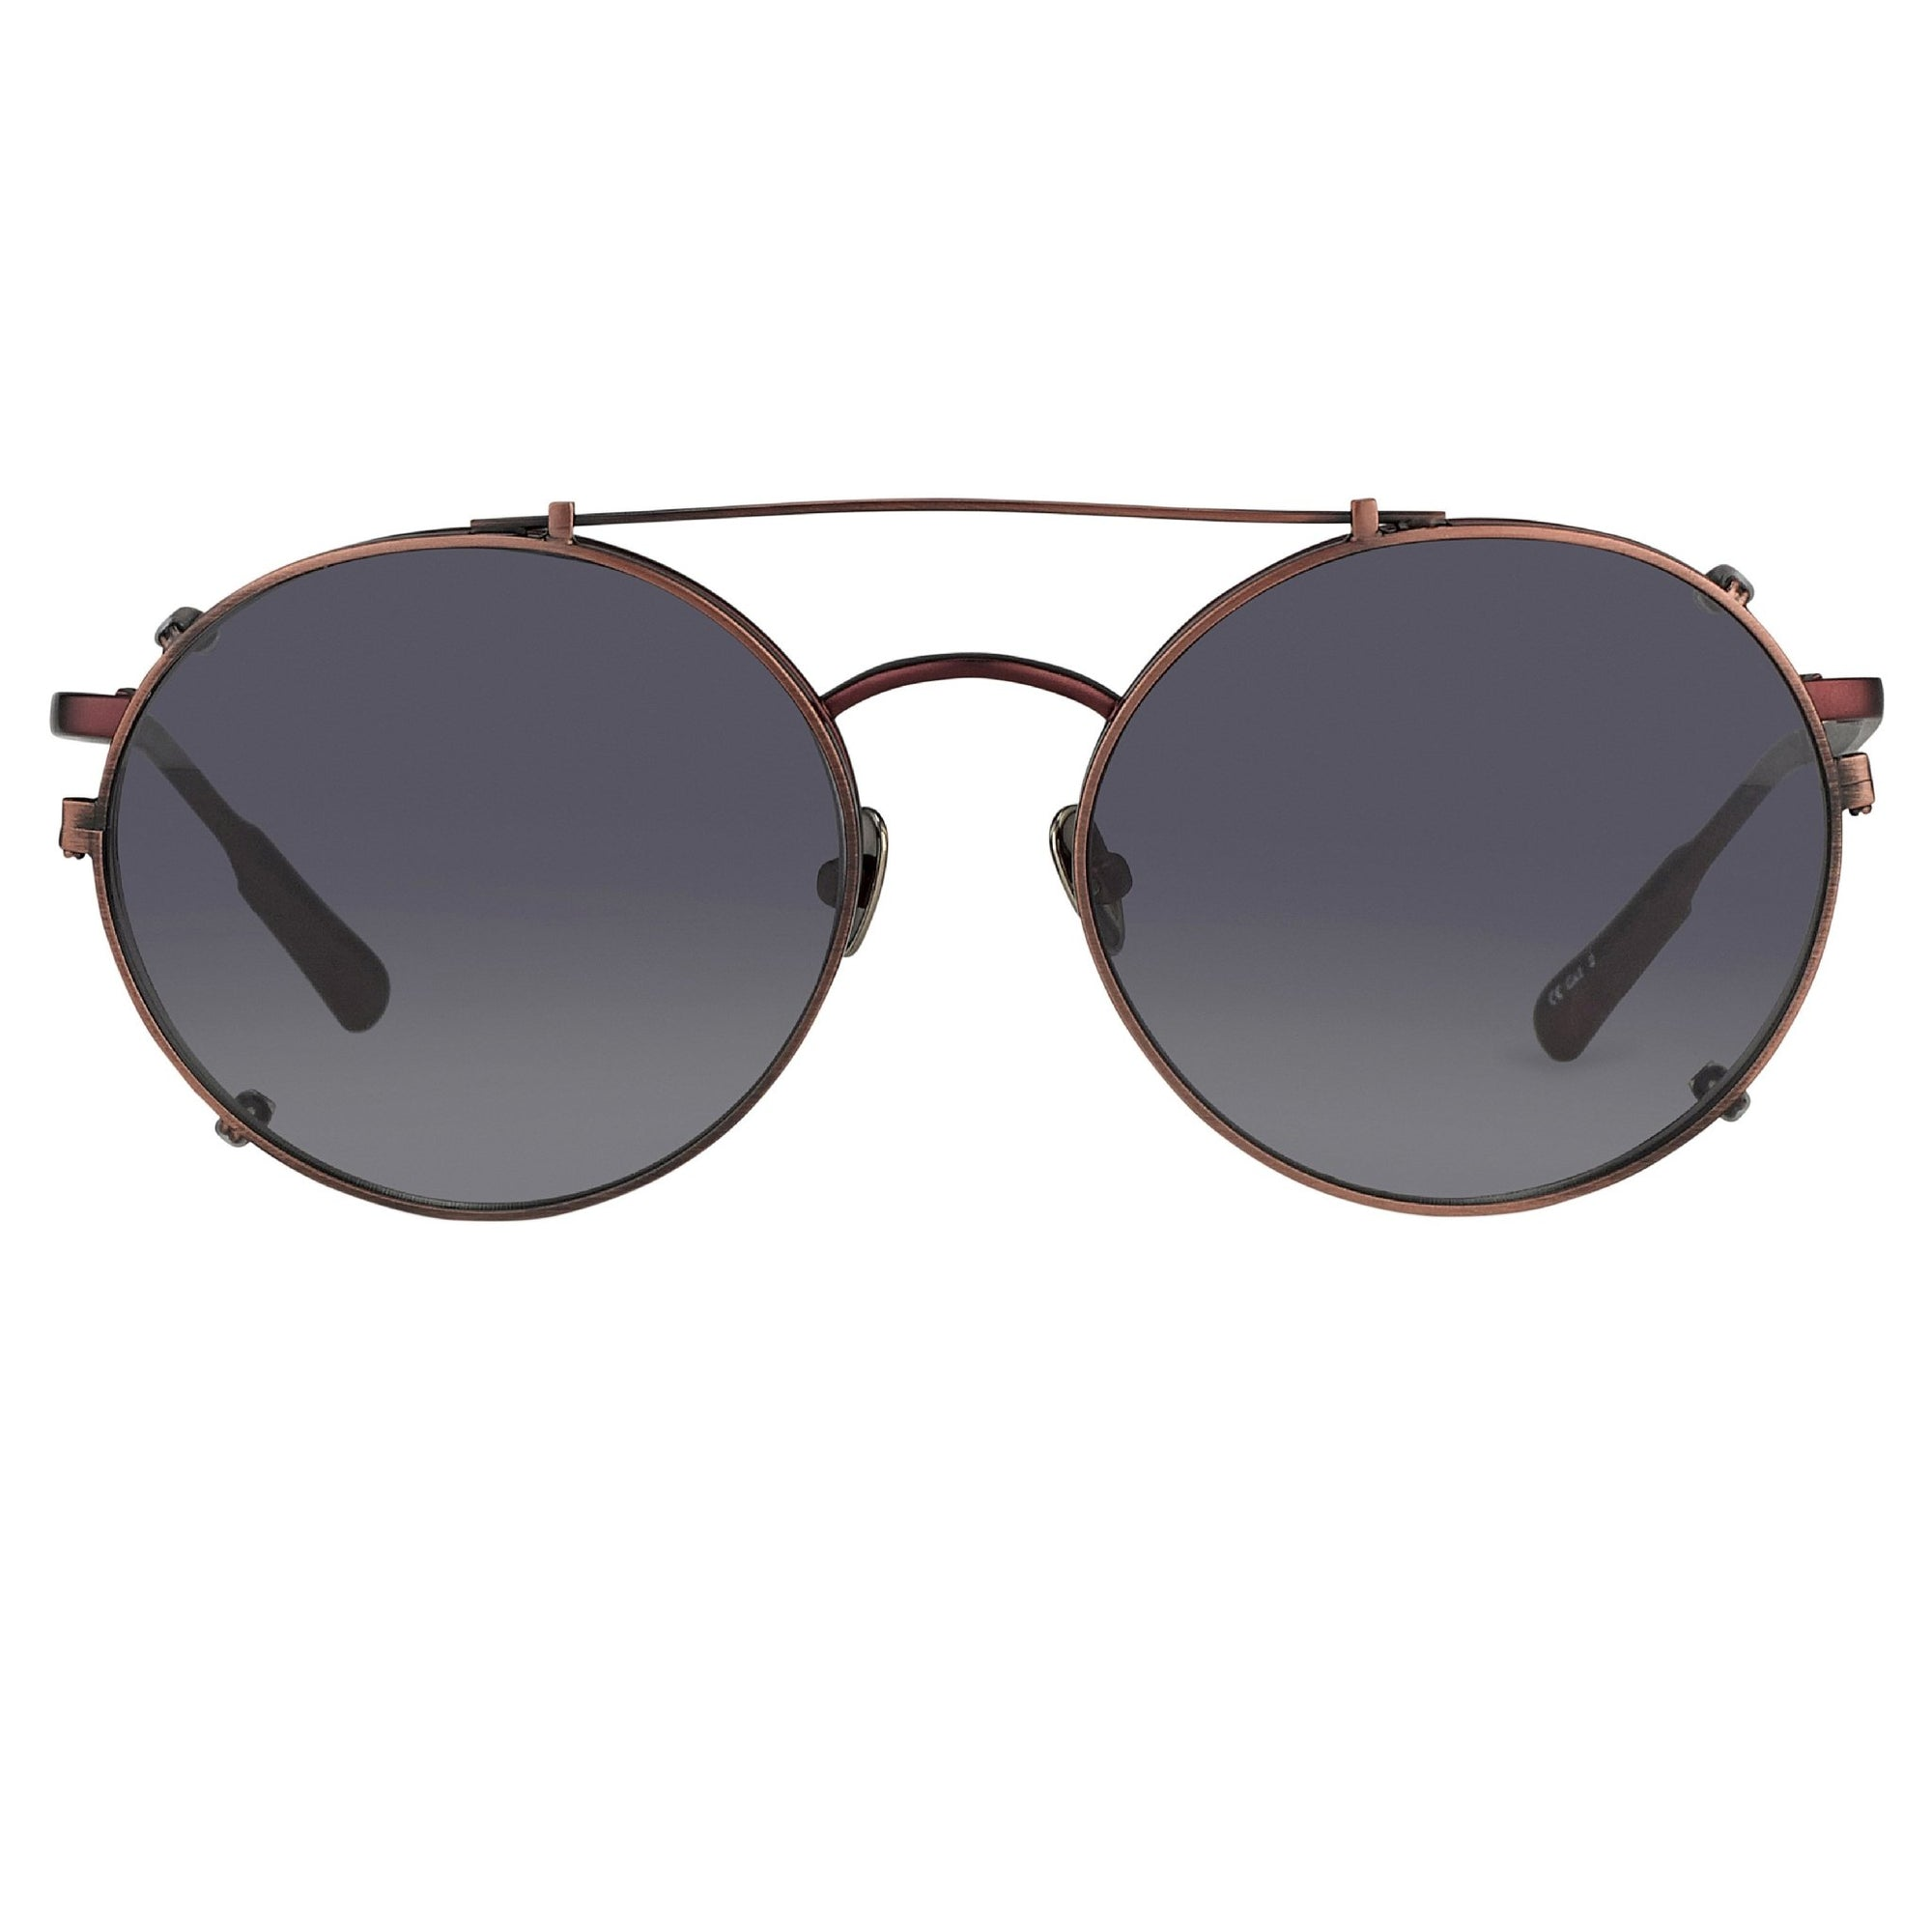 Kris Van Assche Sunglasses Unisex Titanium Oval Matte Burgundy Bronze Clip-On and Green Lenses Category 3- KVA70C5SUN - Watches & Crystals